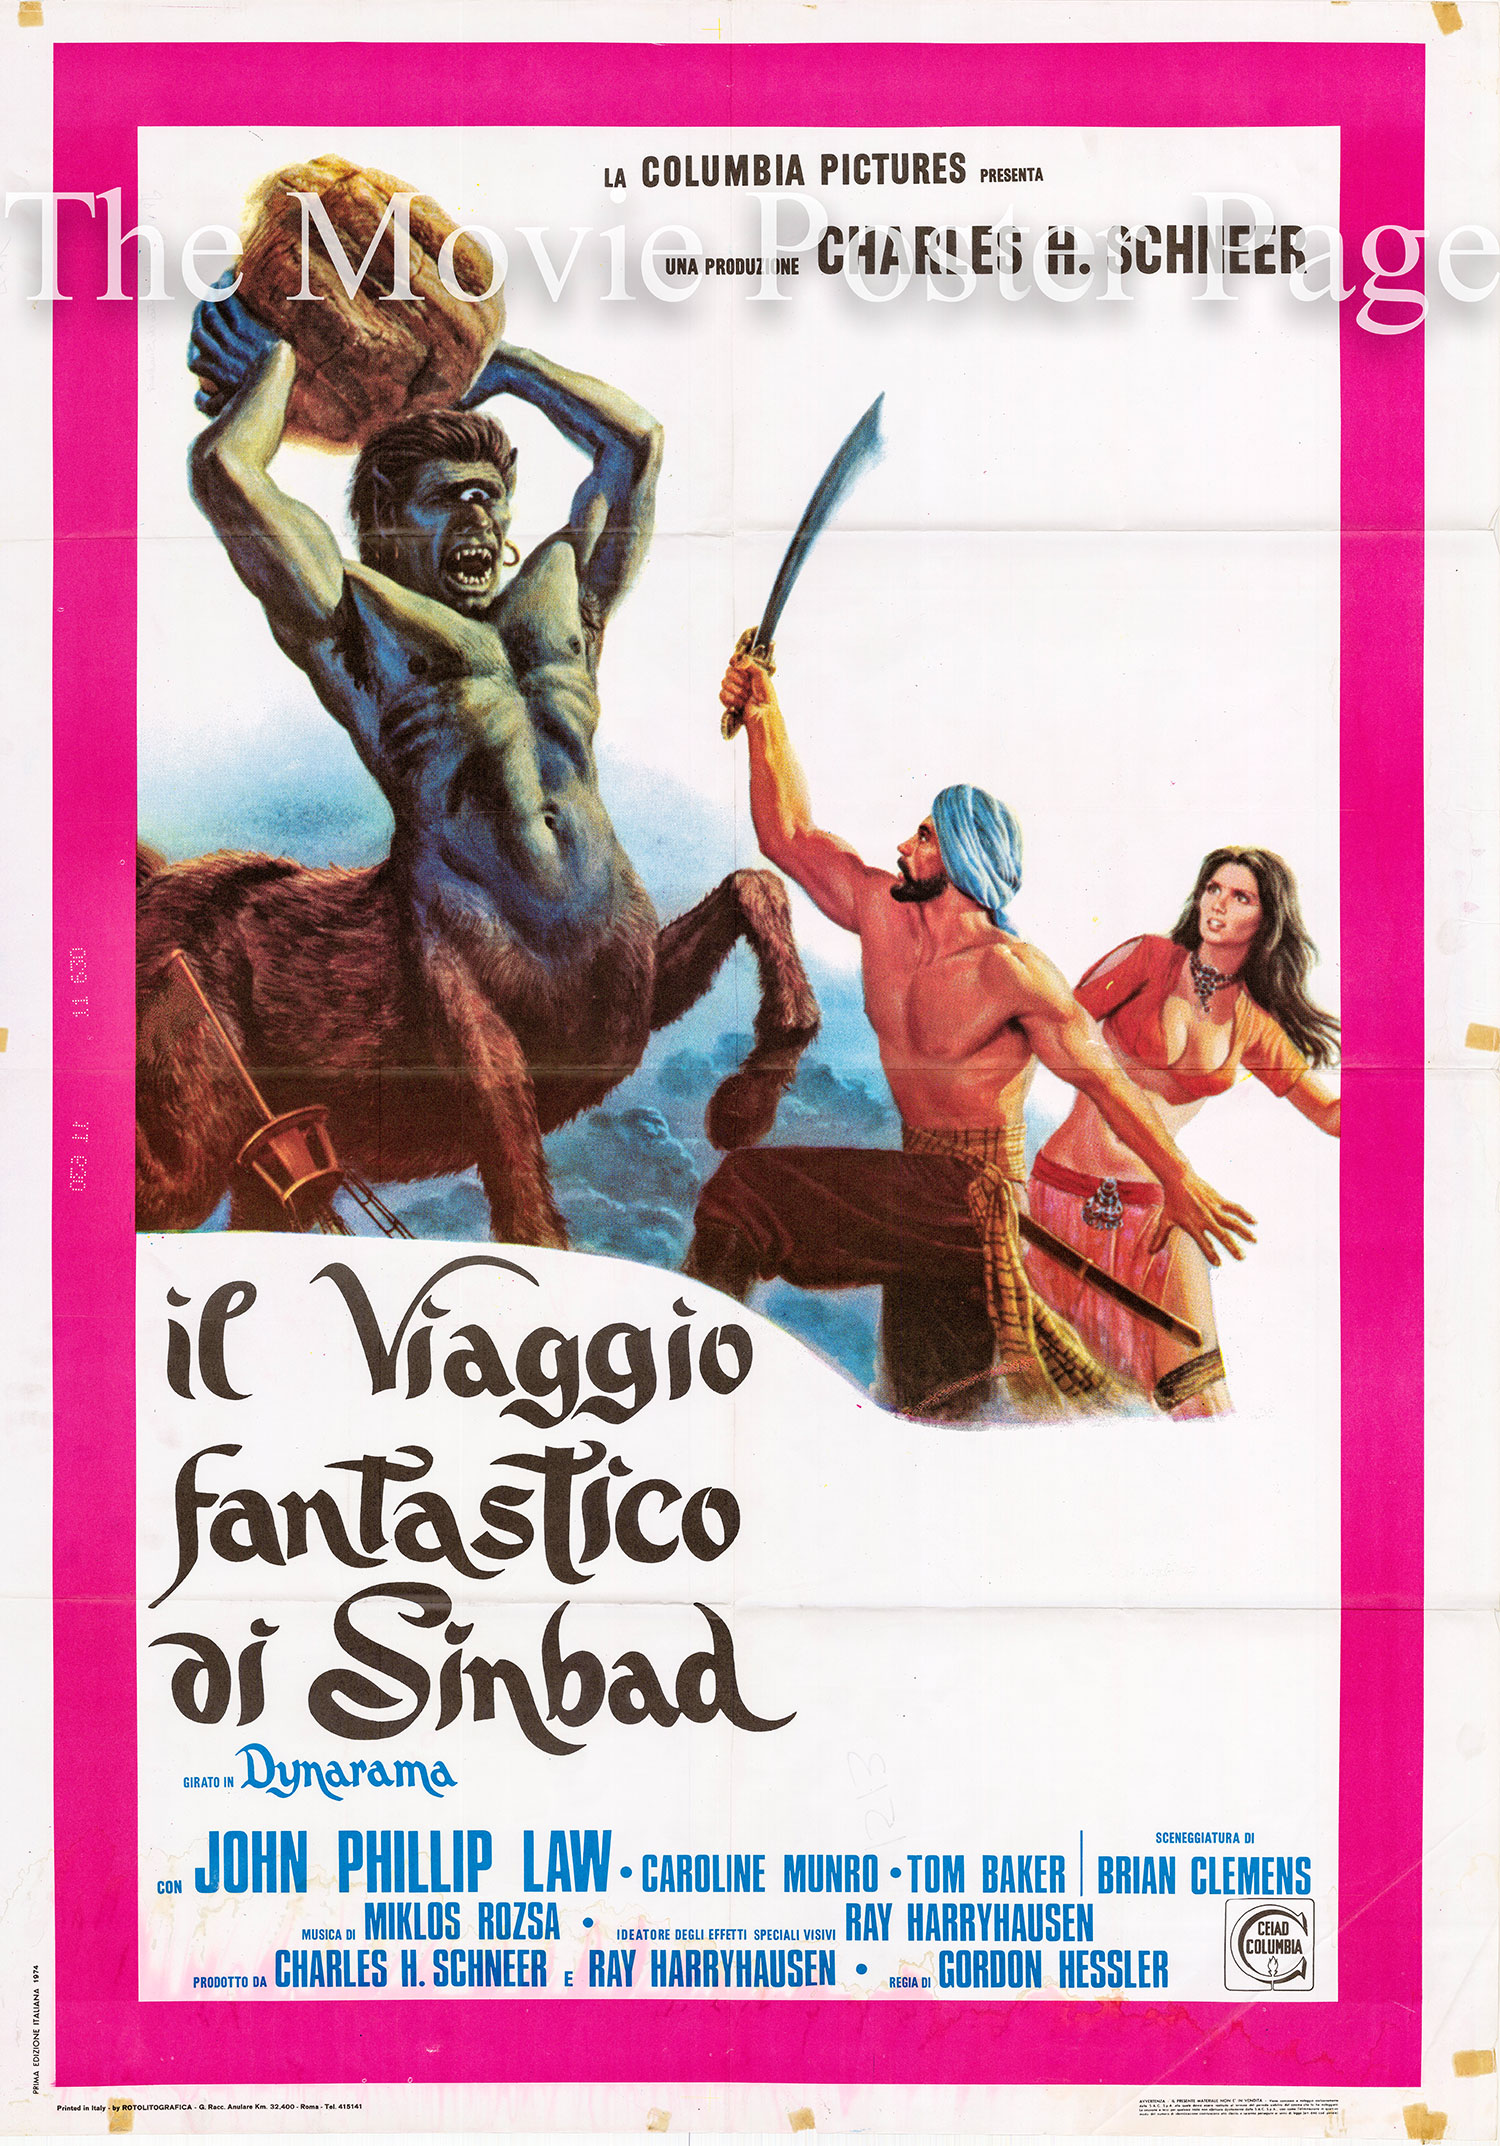 Pictured is an Italian two-sheet promotional poster for the 1973 Gordon Hessler film The Golden Voyage of Sinbad starring John Phillip Law as Sinbad.